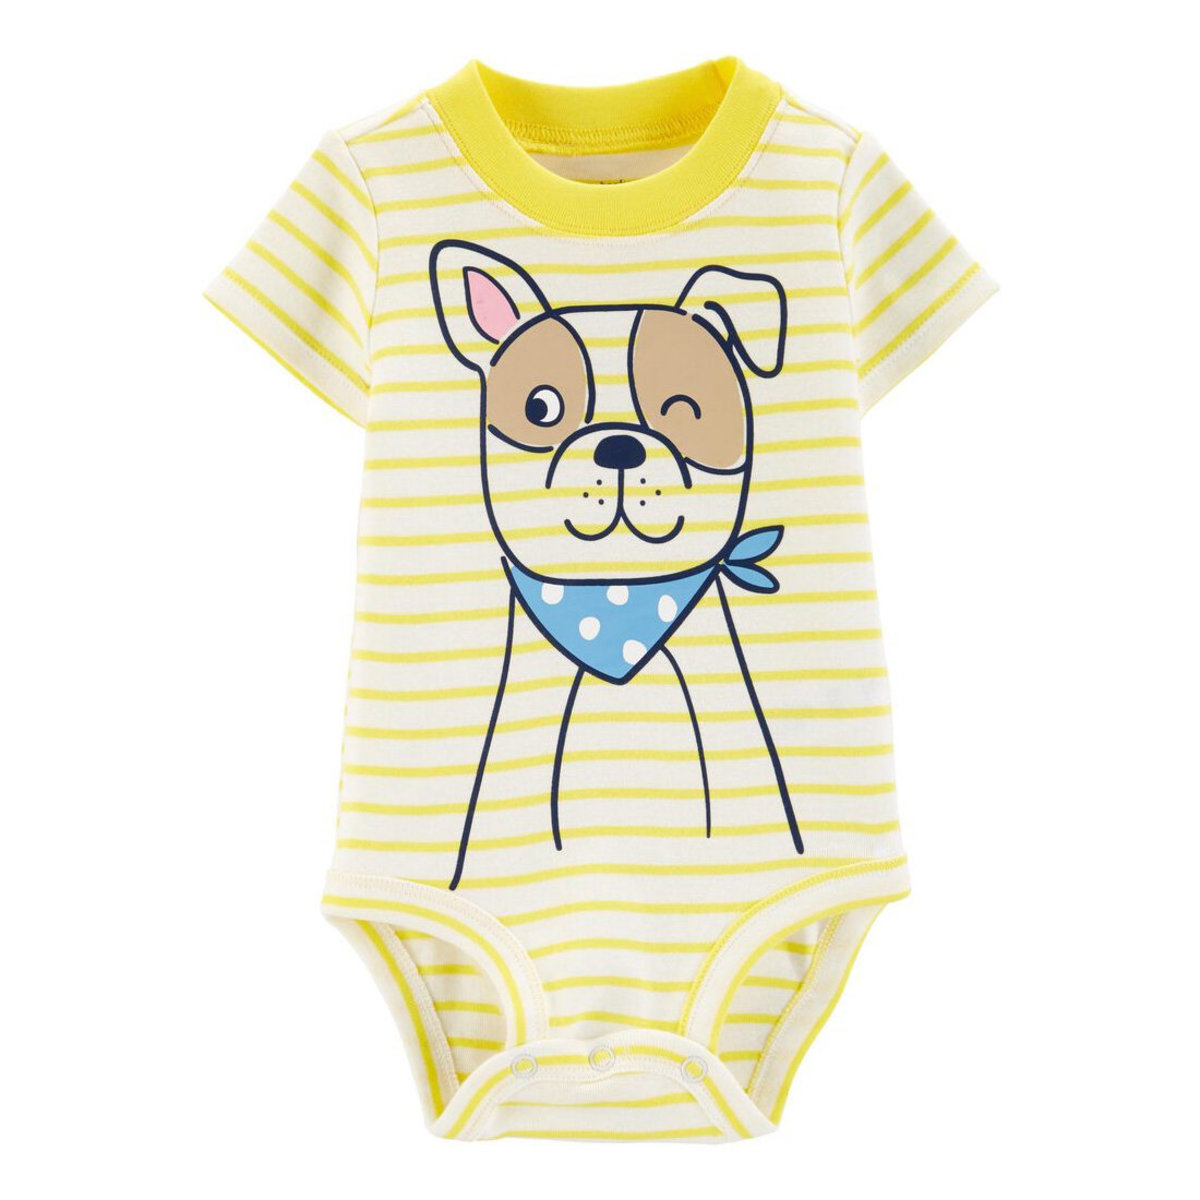 Dog Collectible Baby Bodysuit 9-18 months (parallel)